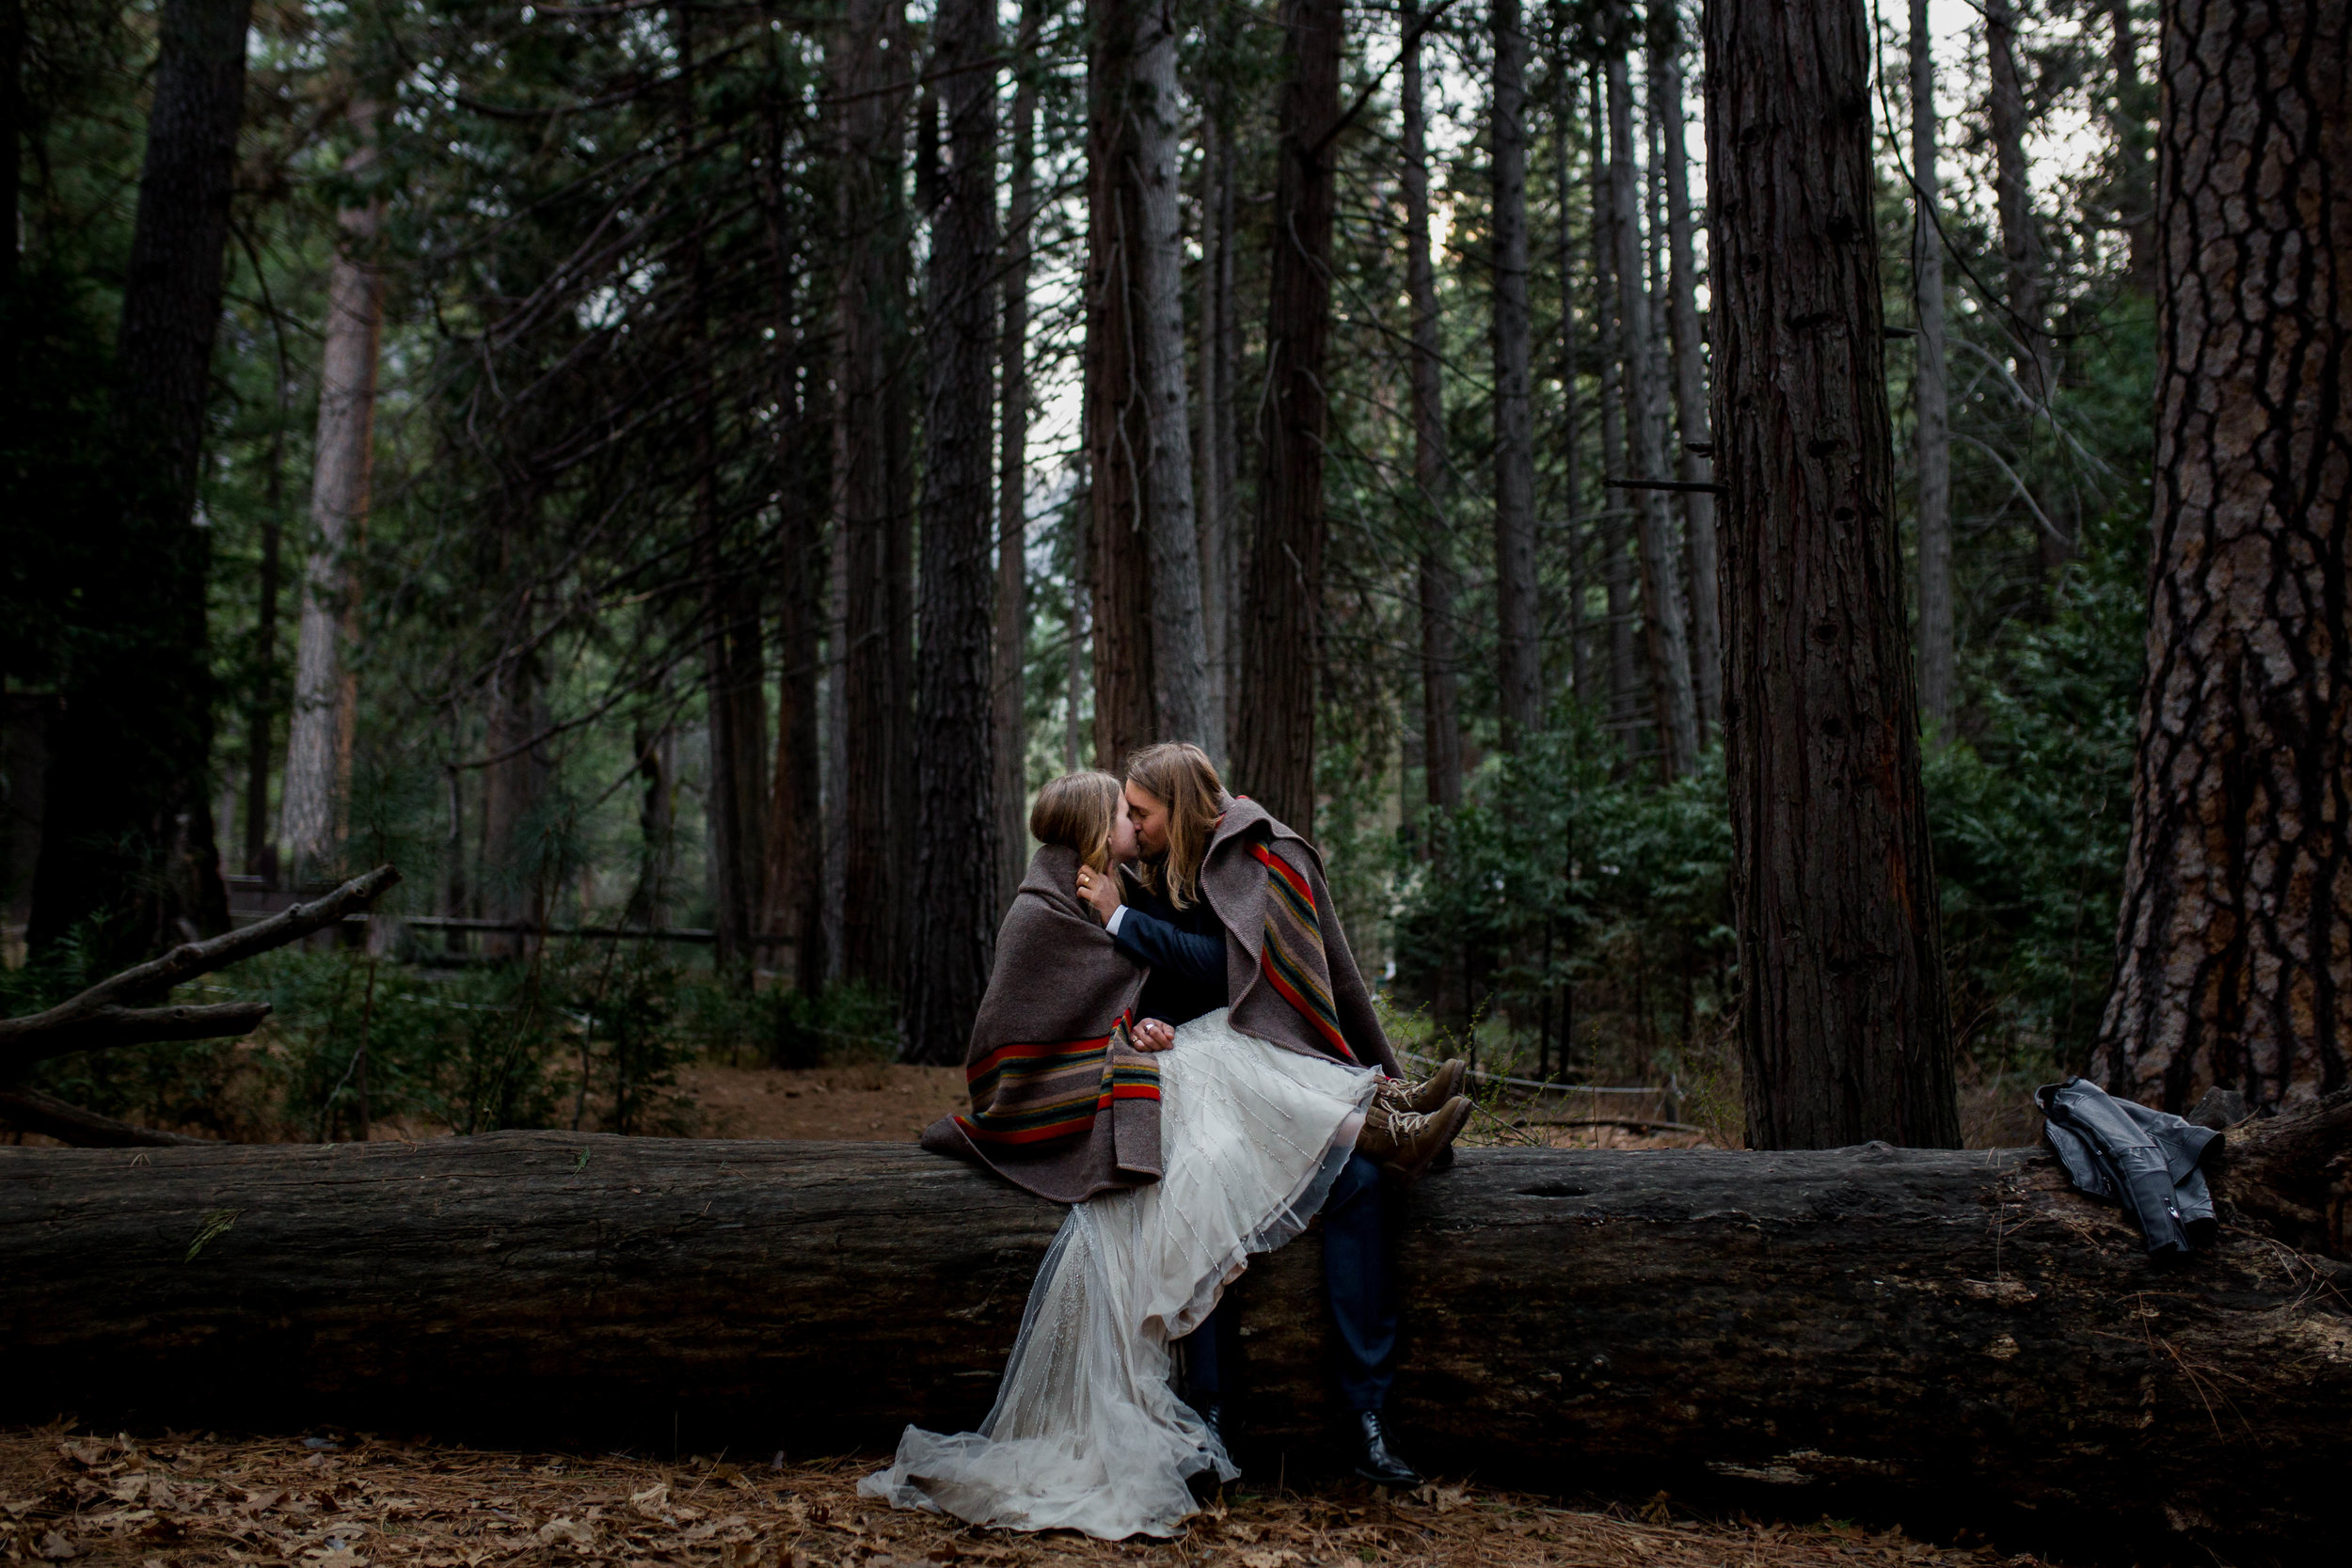 Nicole-Daacke-Photography-Adventurous-Elopement-Intimiate-Wedding-Destination-Wedding-Yosemite-National-Park-Laid-Back-Love-Photographer-4.jpg